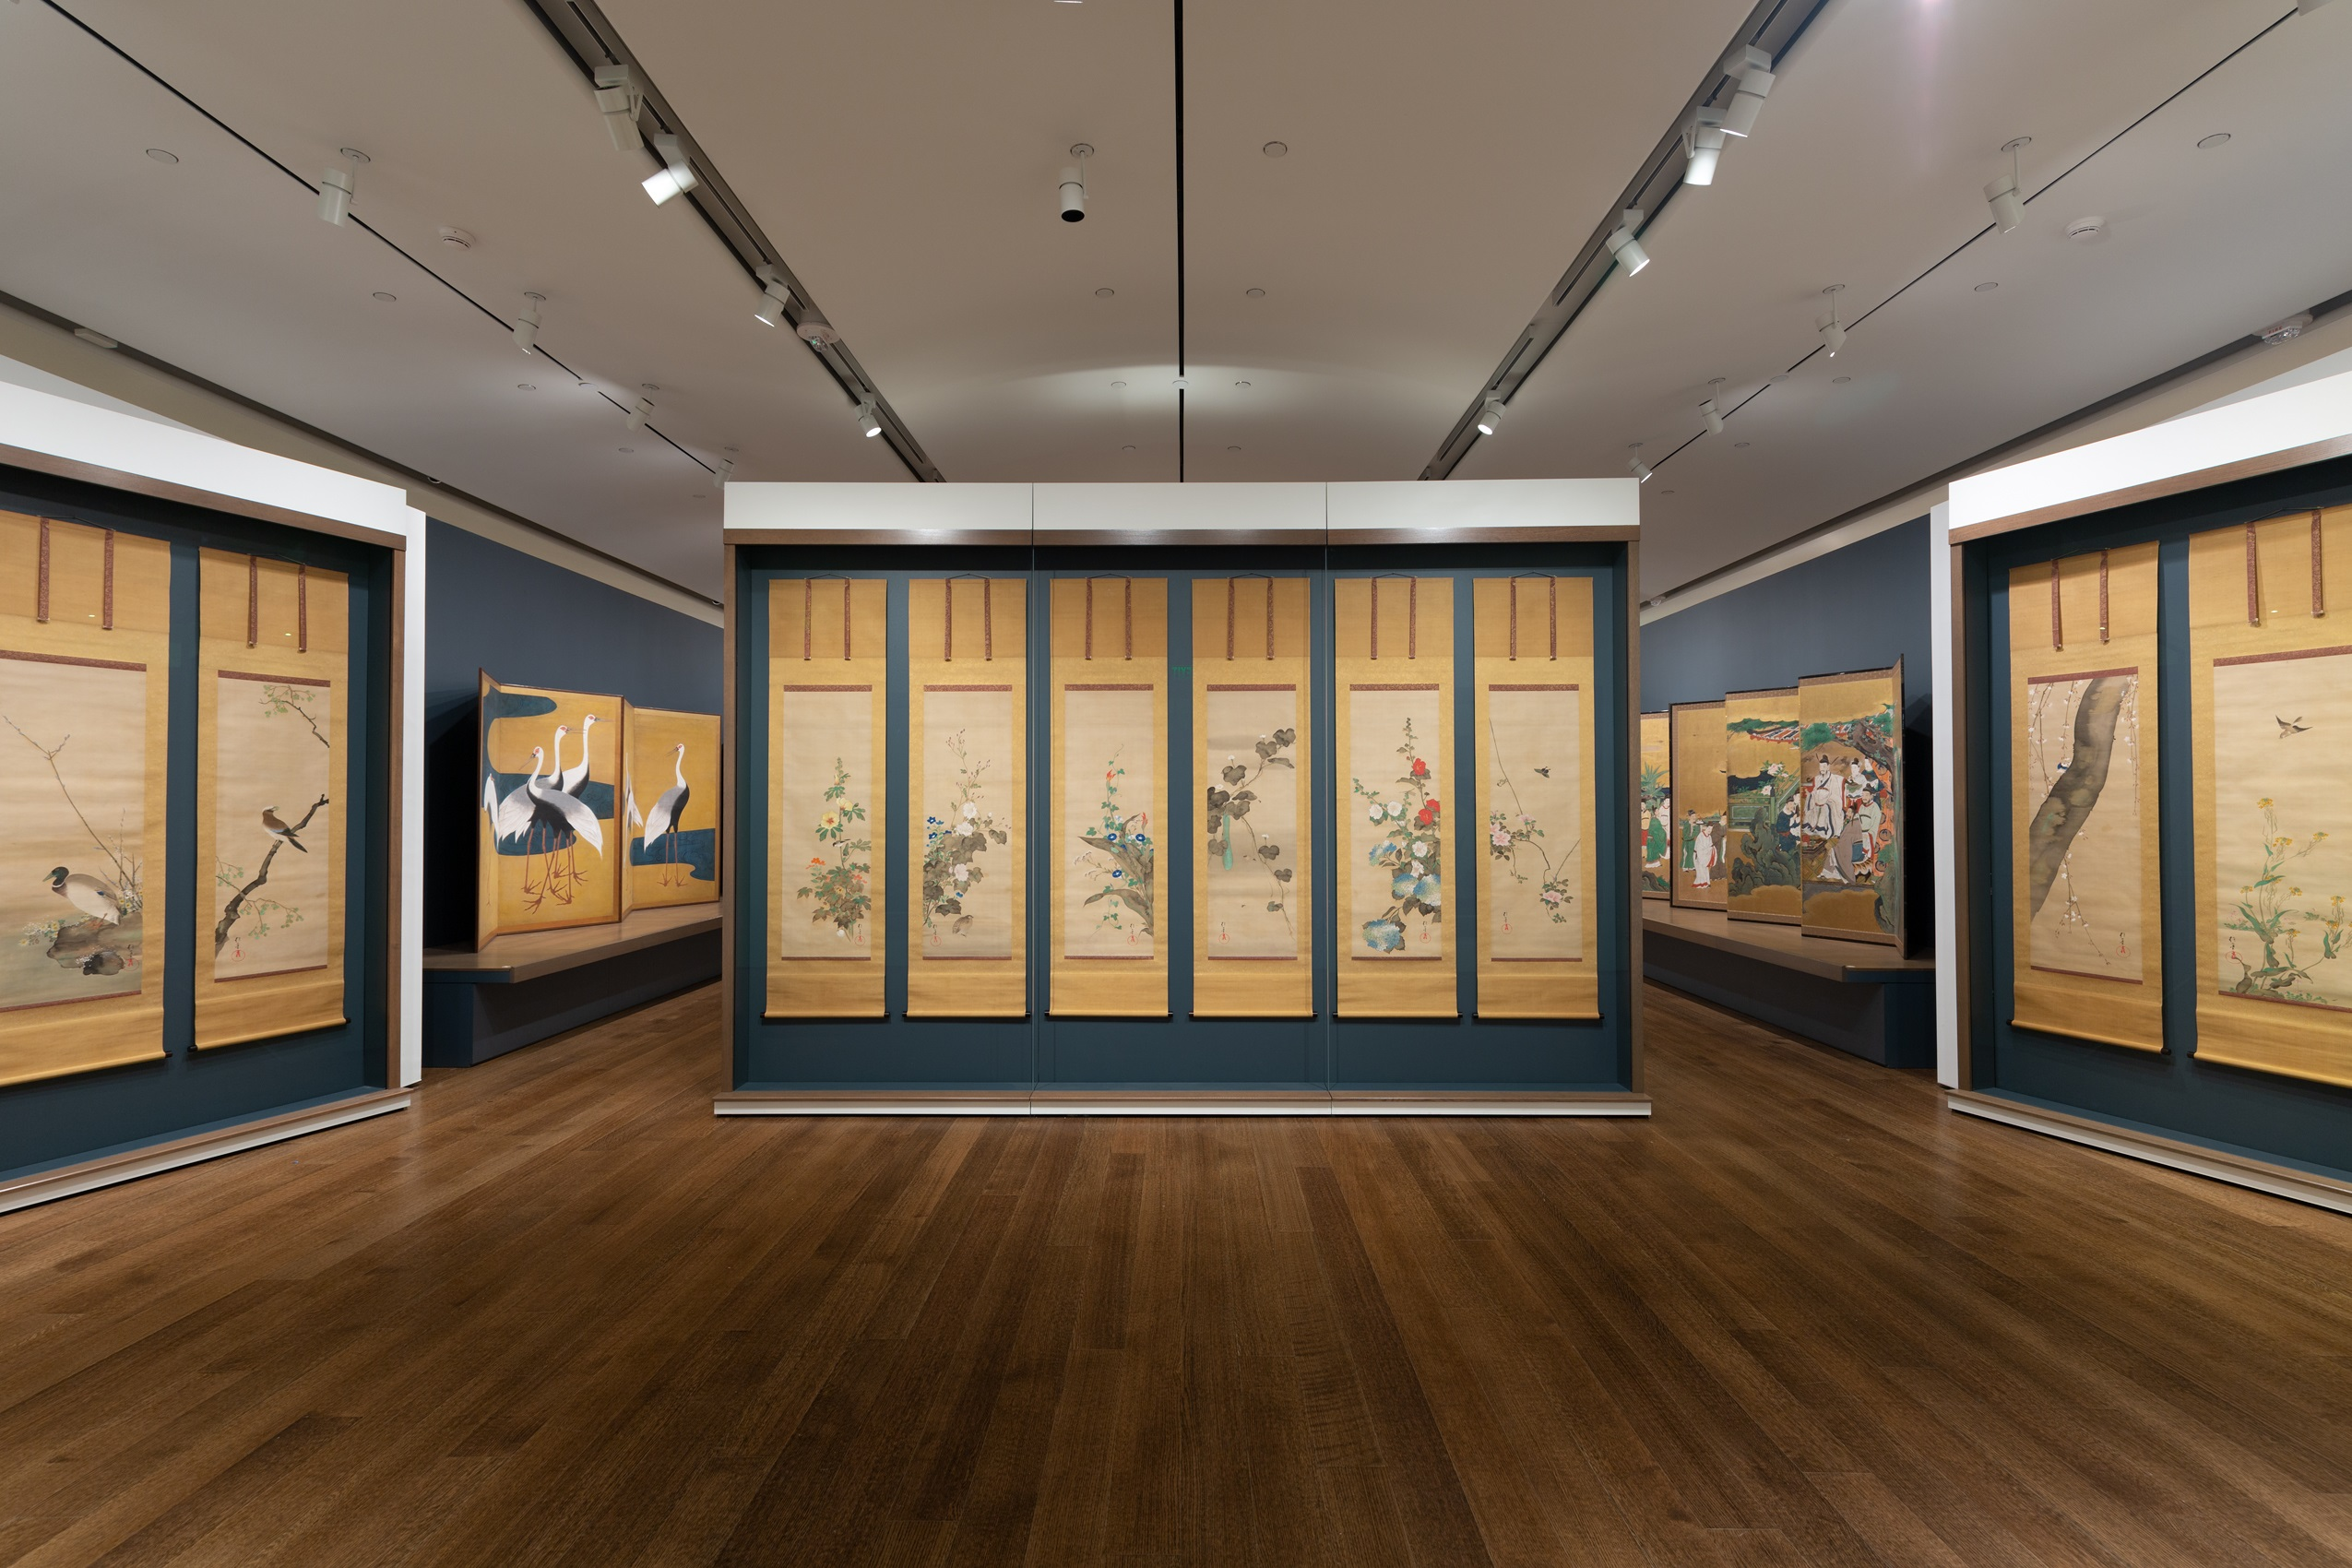 In the center of a gallery is a free-standing wall with a dark bluish-gray trim, upon which are six vertically oriented hanging scroll paintings. The paintings depict colorful birds and flowers and have a cream-colored background. Several other paintings depicting birds and people are mounted on walls situated to the left and right of the center wall.